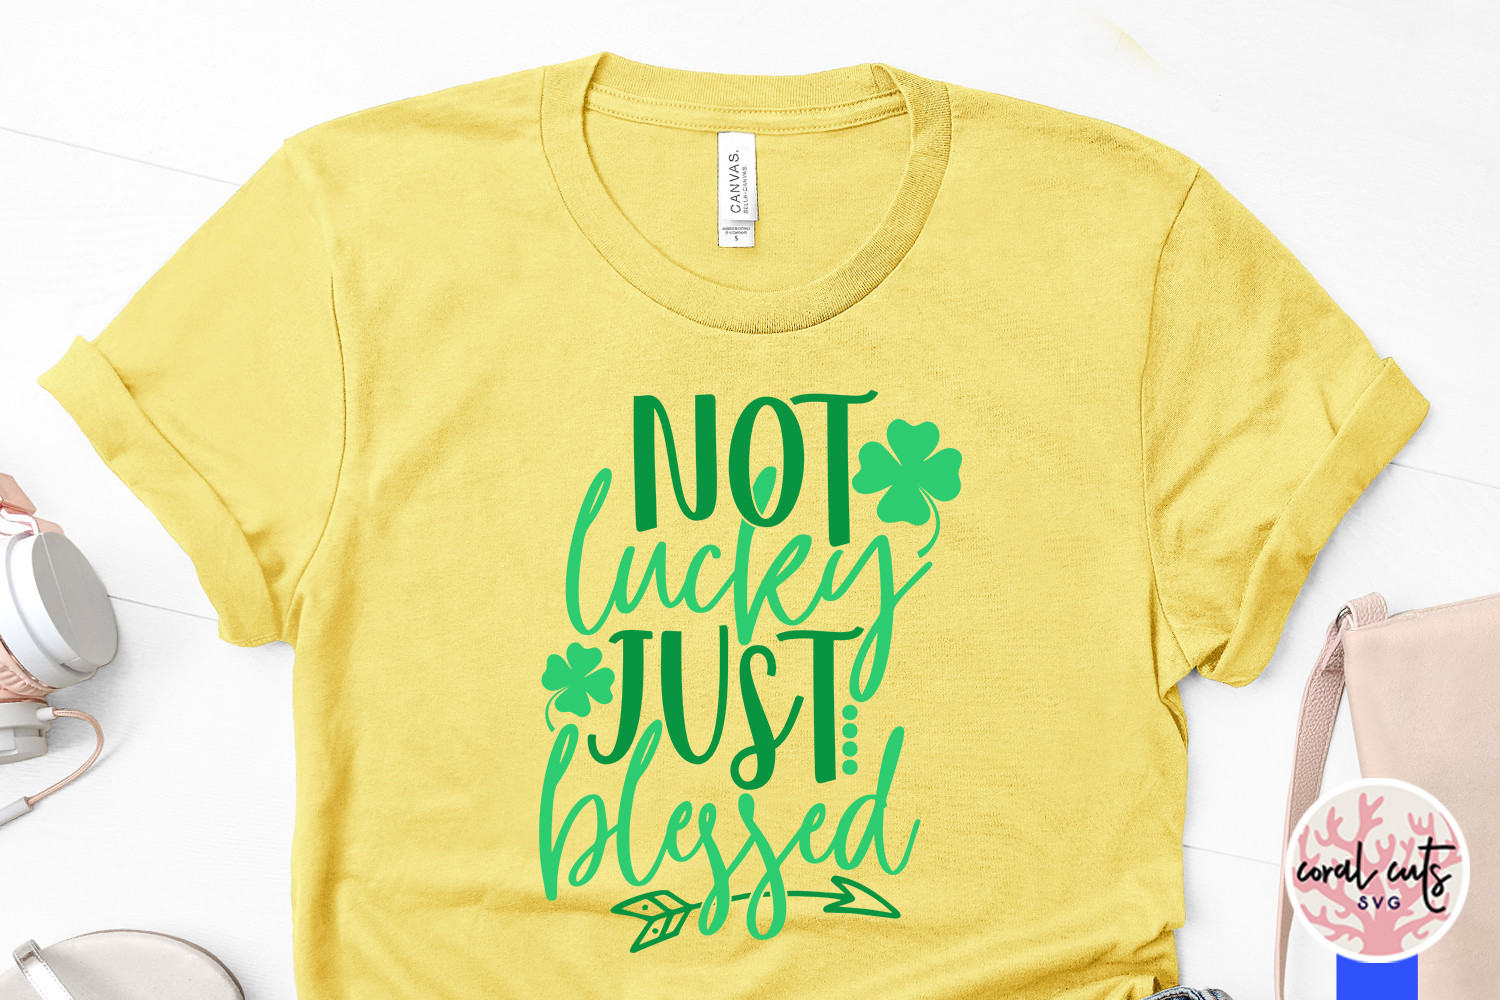 Not lucky just blessed - St. Patrick's Day SVG EPS DXF PNG example image 3